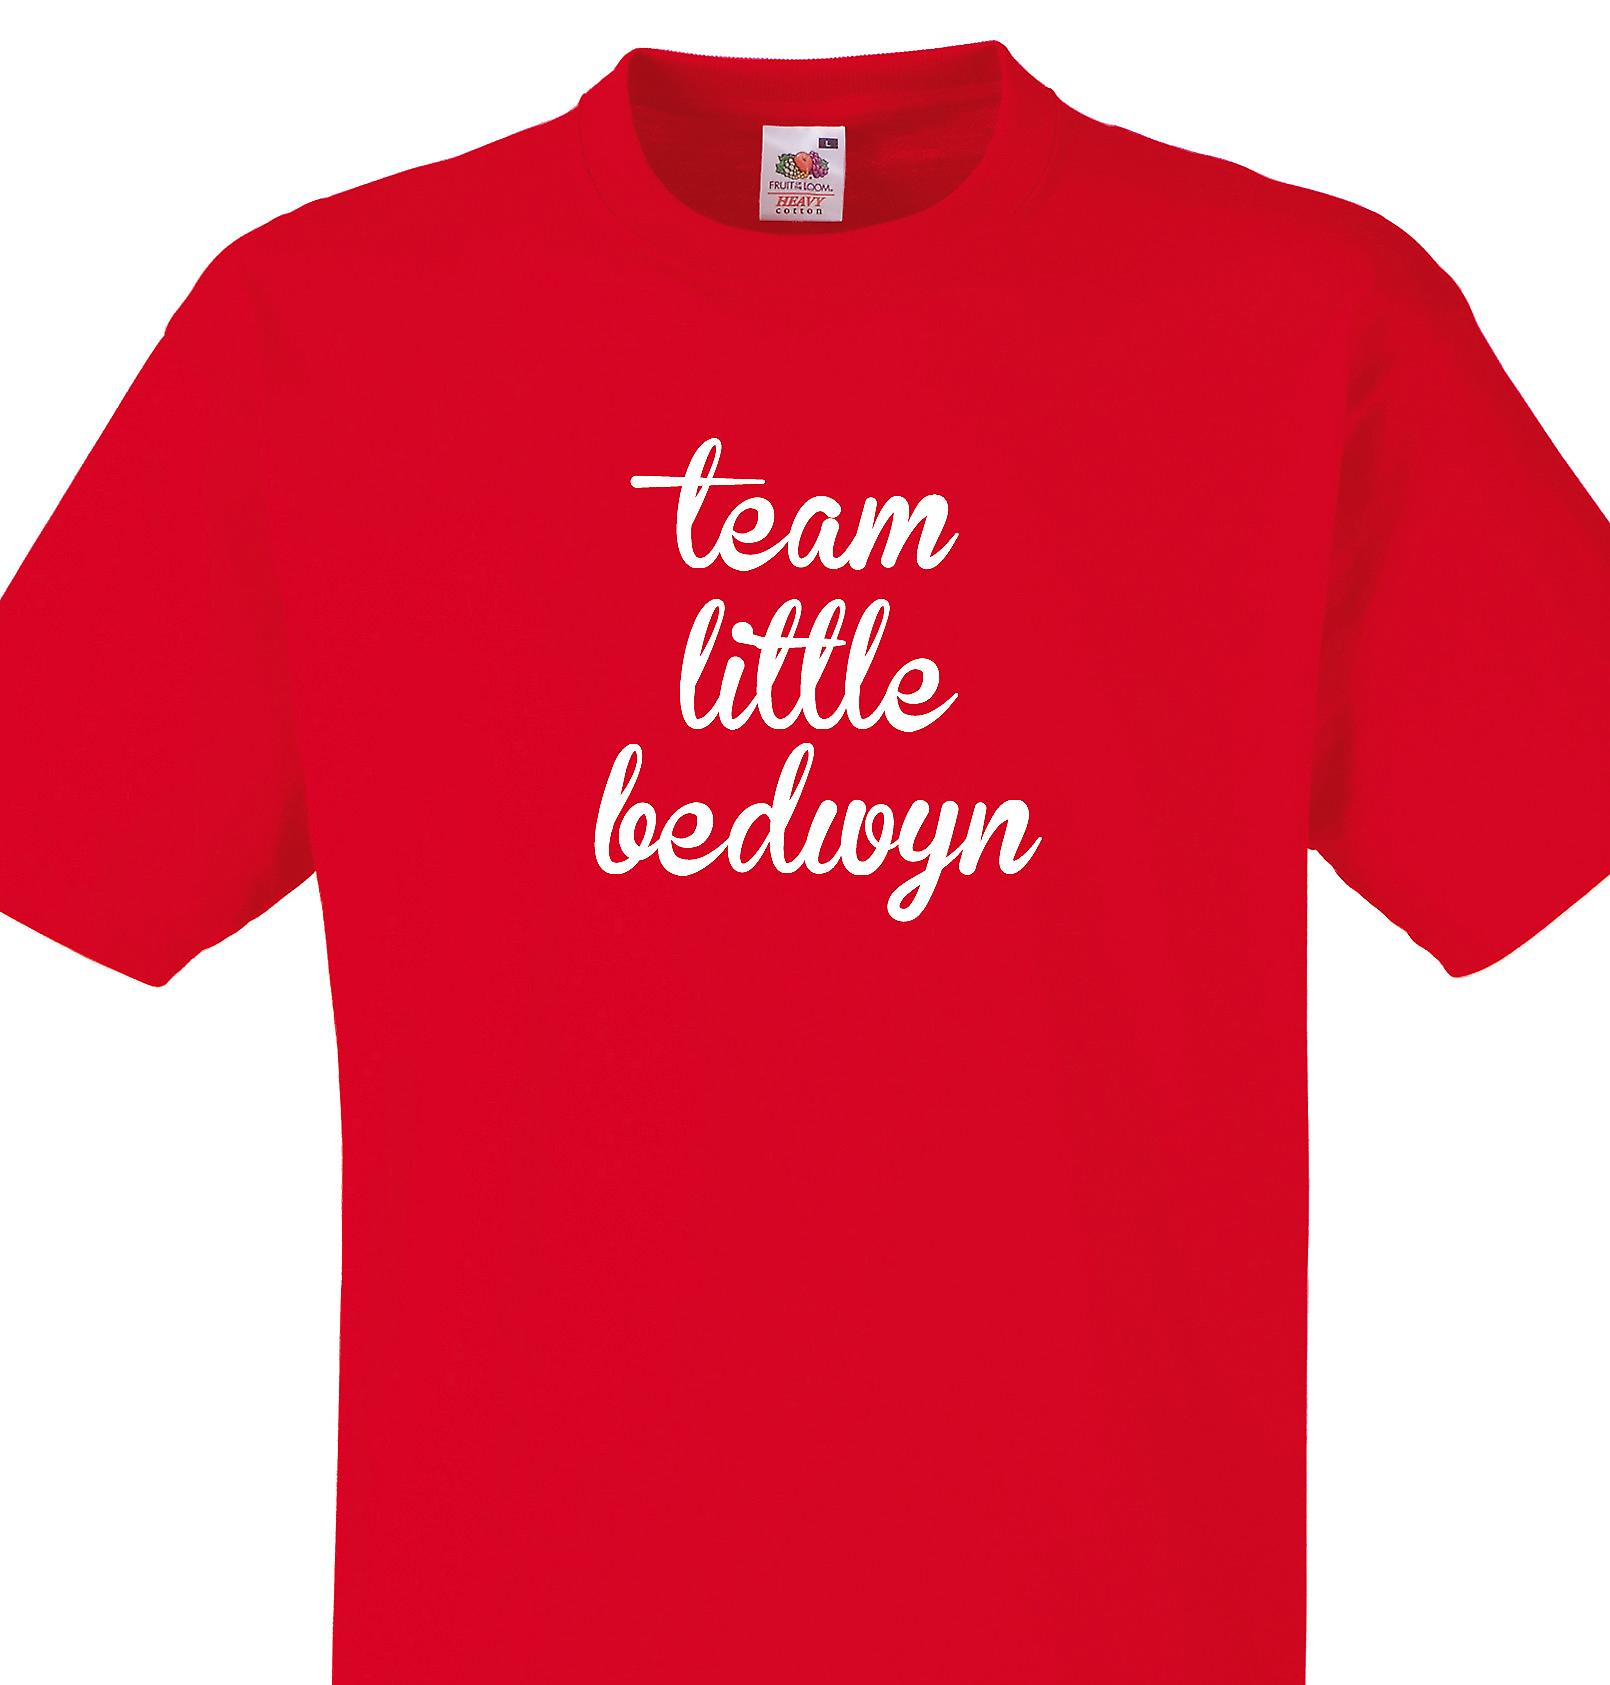 Team Little bedwyn Red T shirt